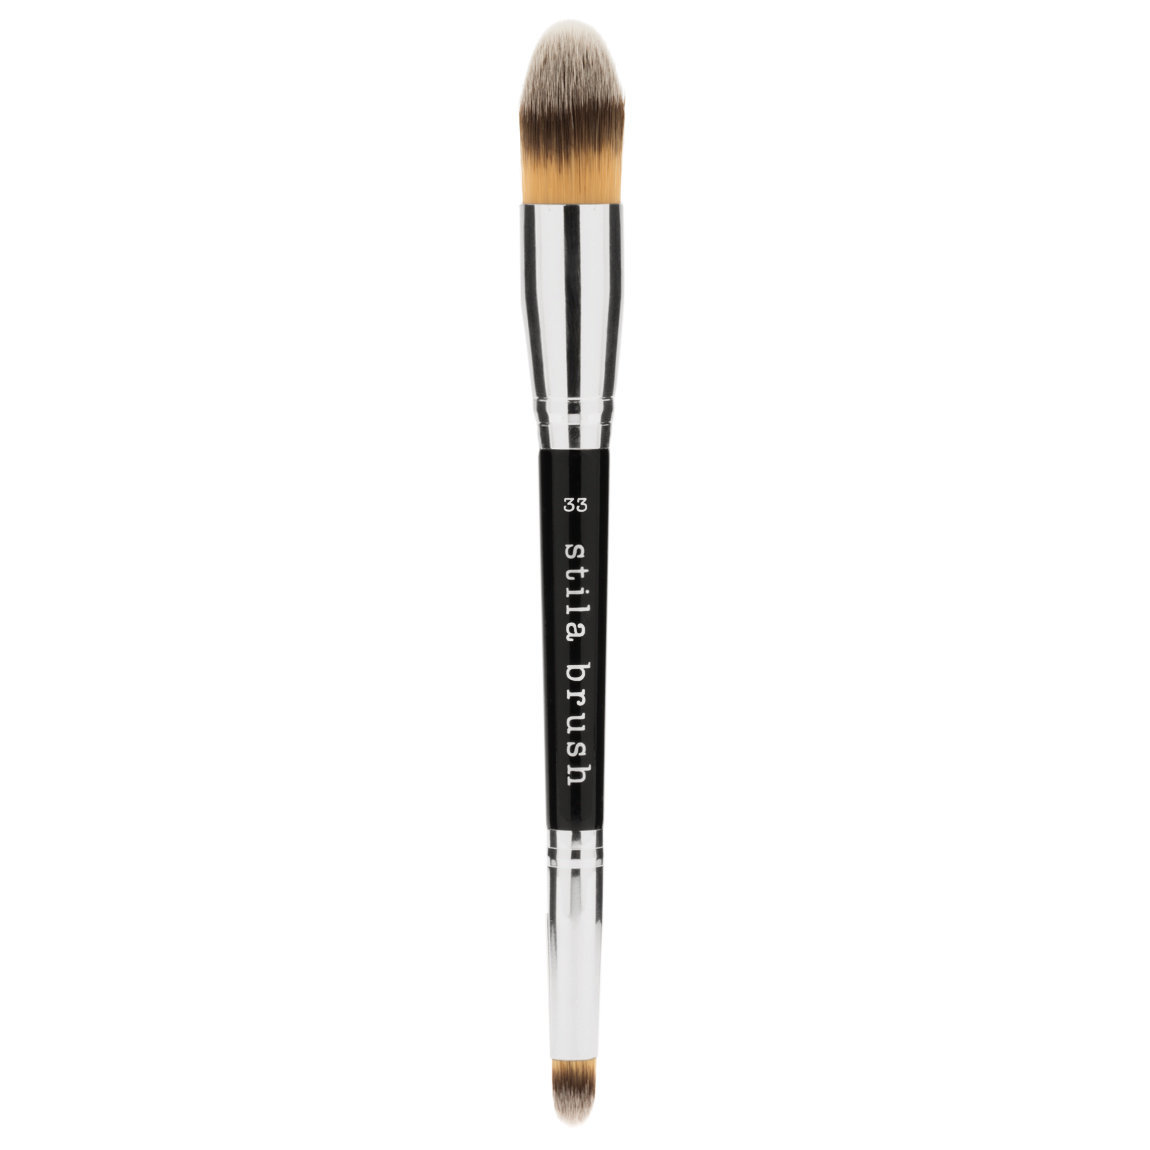 Stila #33 One Step Complexion Brush product swatch.